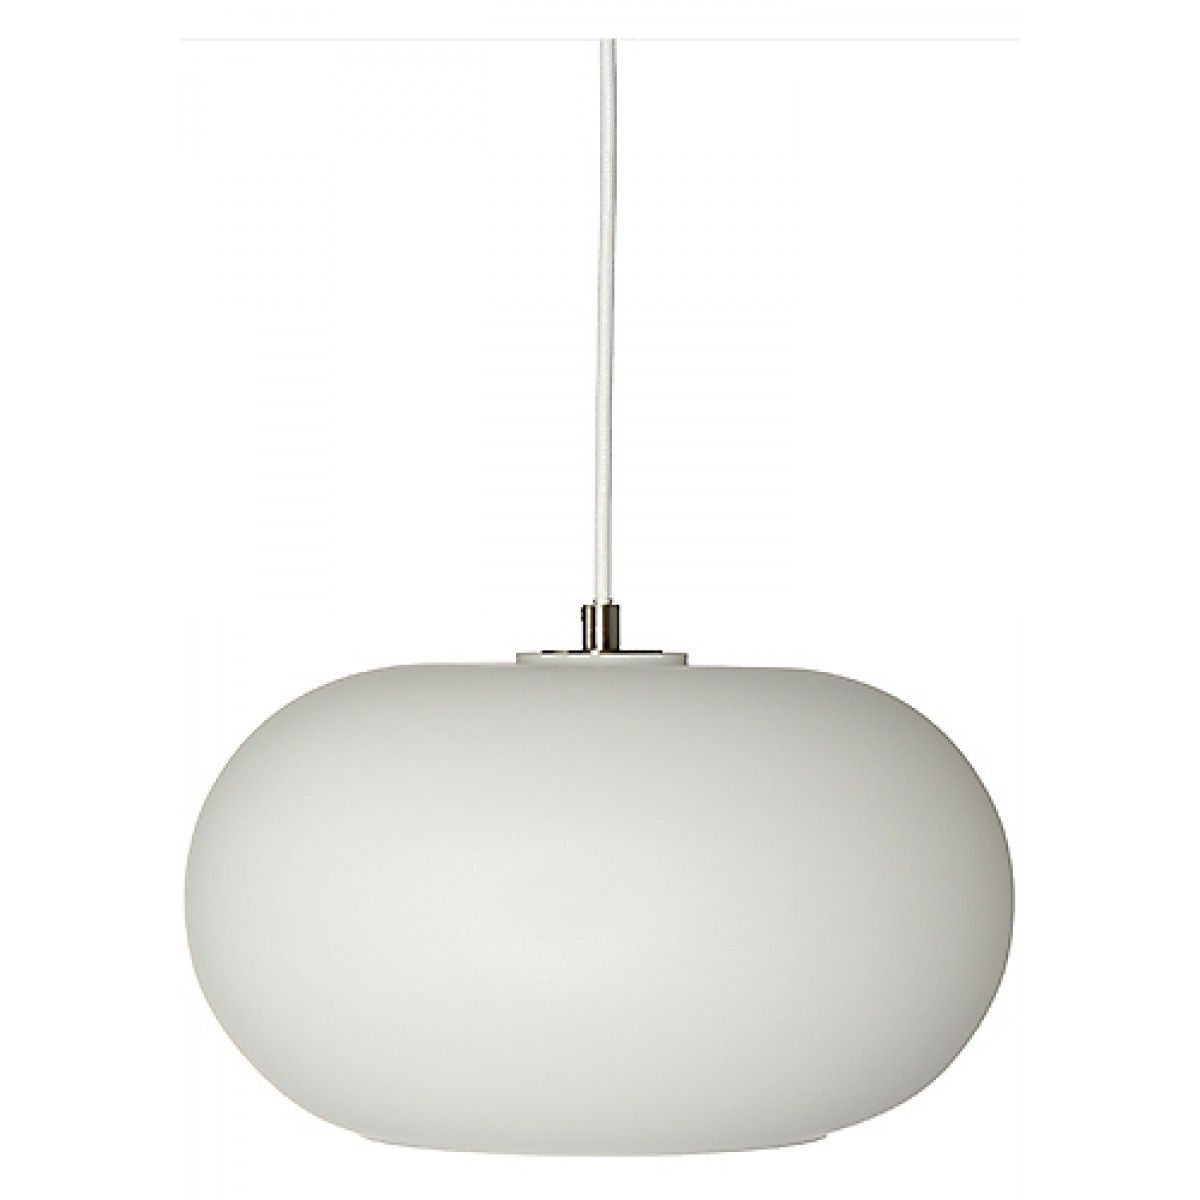 iconic lighting. FRANDSEN Kobe Opal White/Satin Pendant Lamp Iconic Lighting I